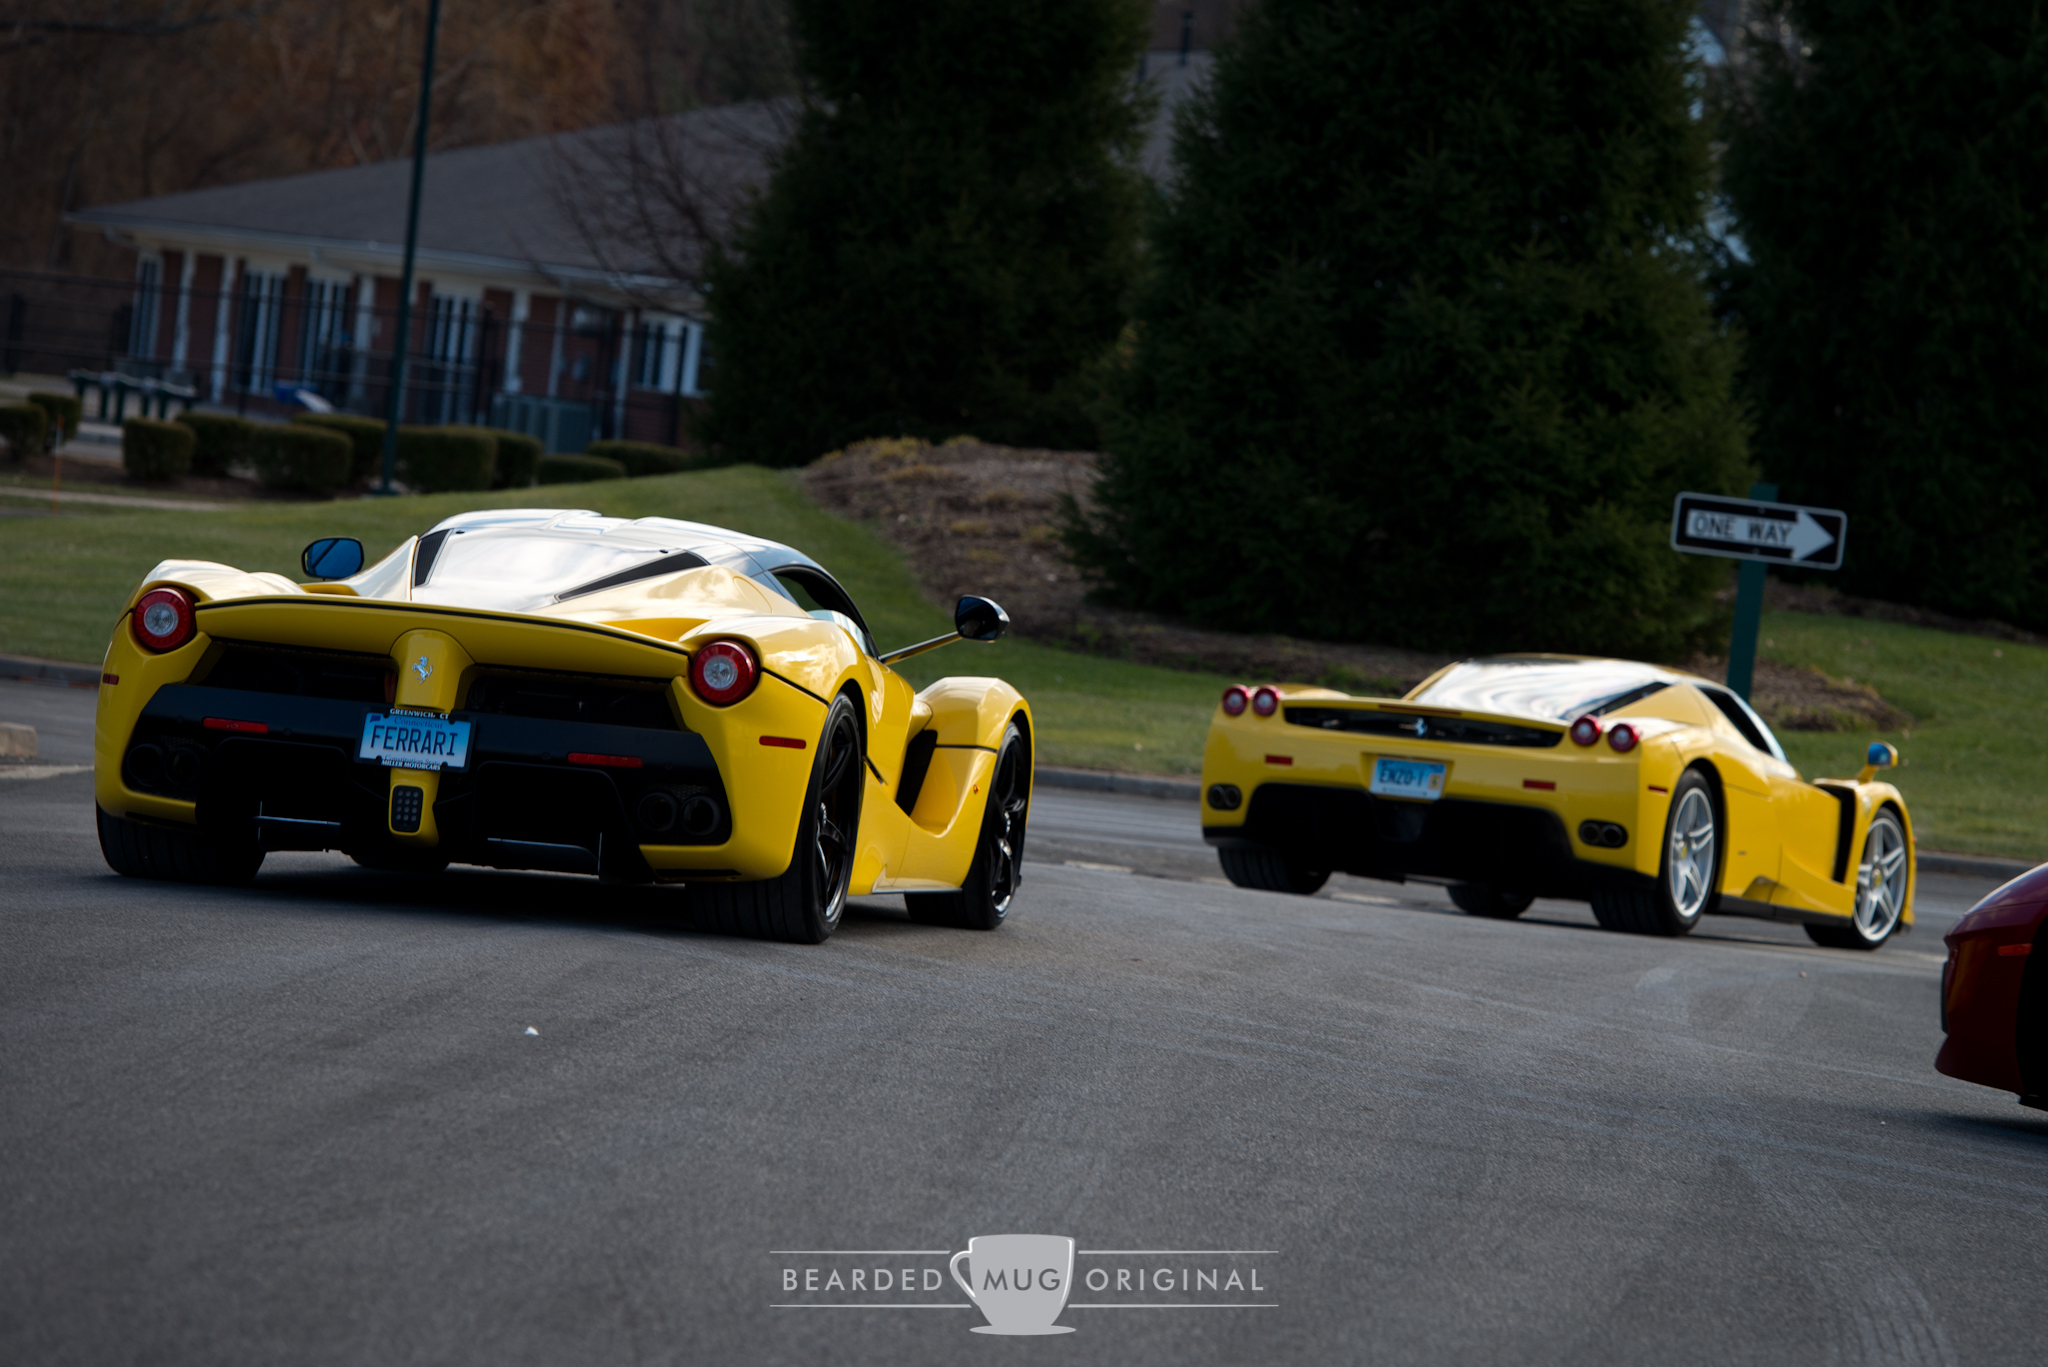 Talk about evolution. An Enzo leads the LaFerrari out of the lot after a successful morning of shooting the promotional picture for the event.